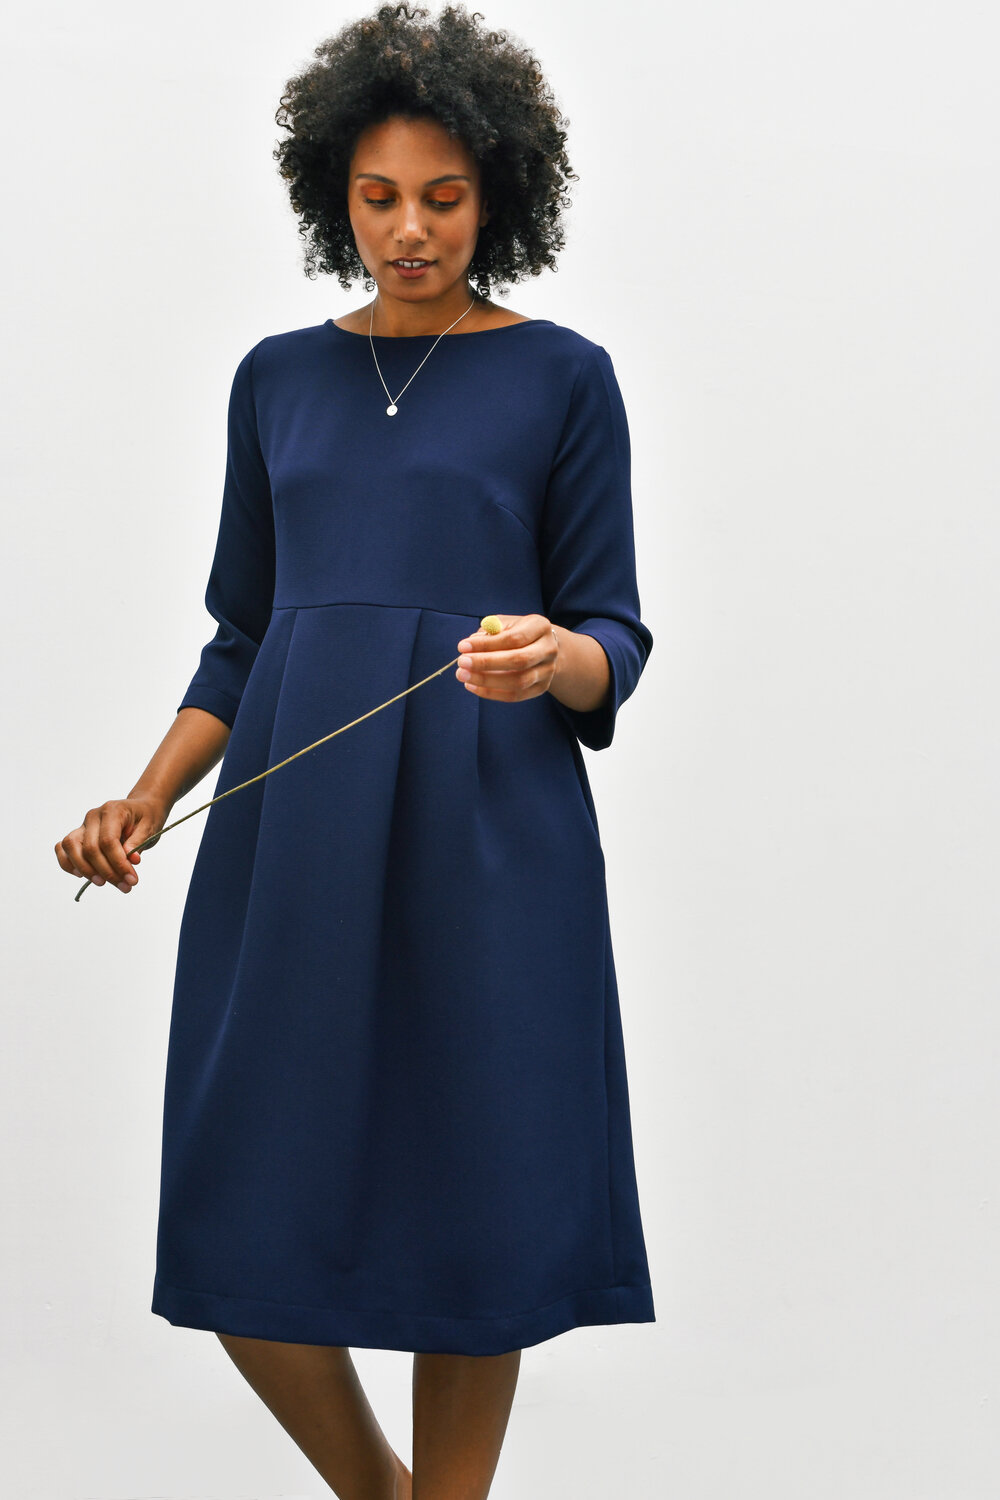 Woman wearing the Cissy Dress sewing pattern by Homer and Howells. A dress pattern made in cottons, cords, wool or crepe fabrics, featuring a slightly boxy fit, boat neck, bracelet length sleeves, centre back zip. Deep pleats in the skirt create volume and movement, plus side seam pockets.